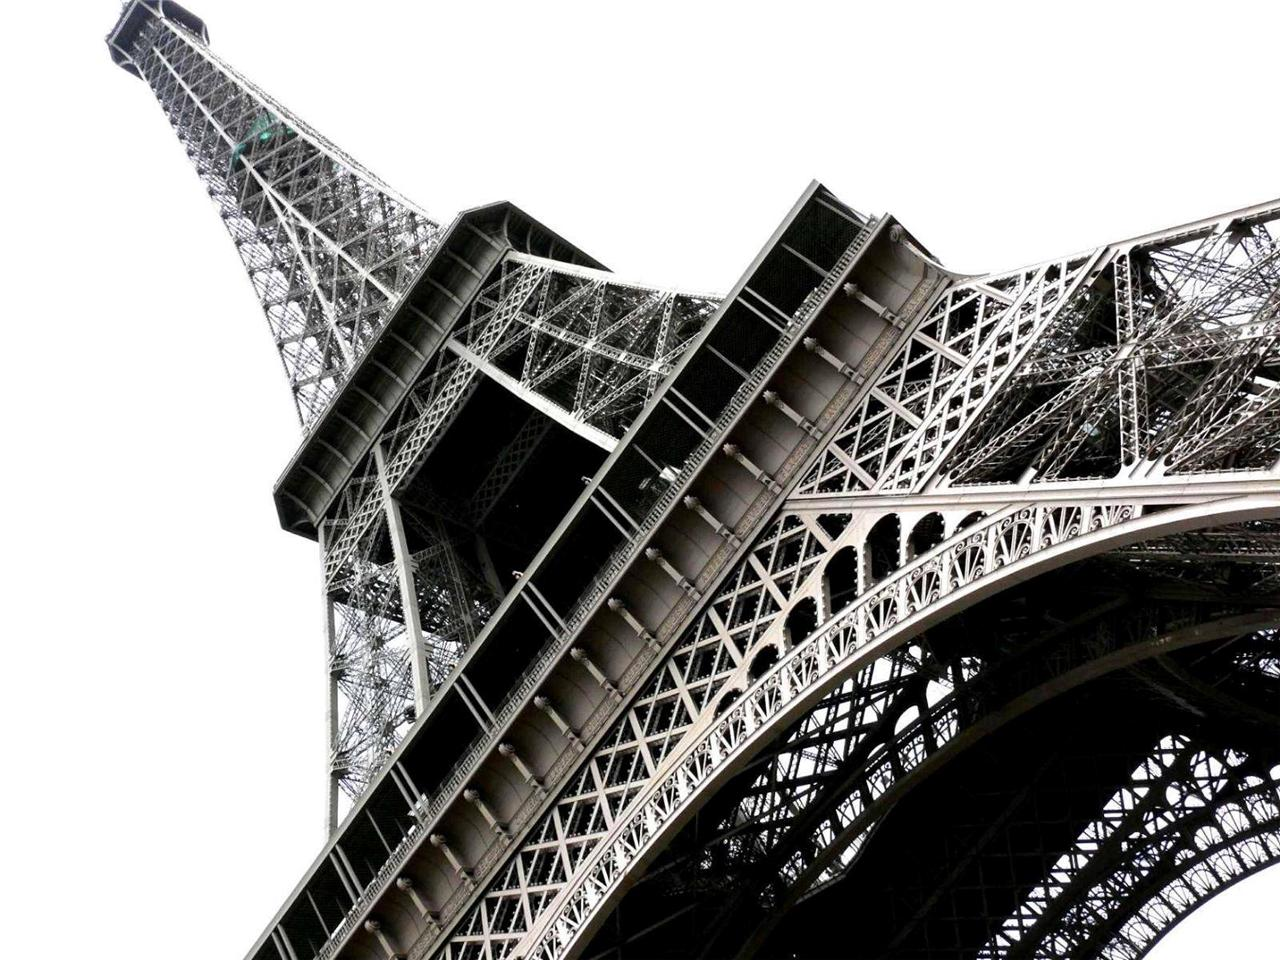 ikea paris eiffel tower canvas picture wall decor 78x55 new